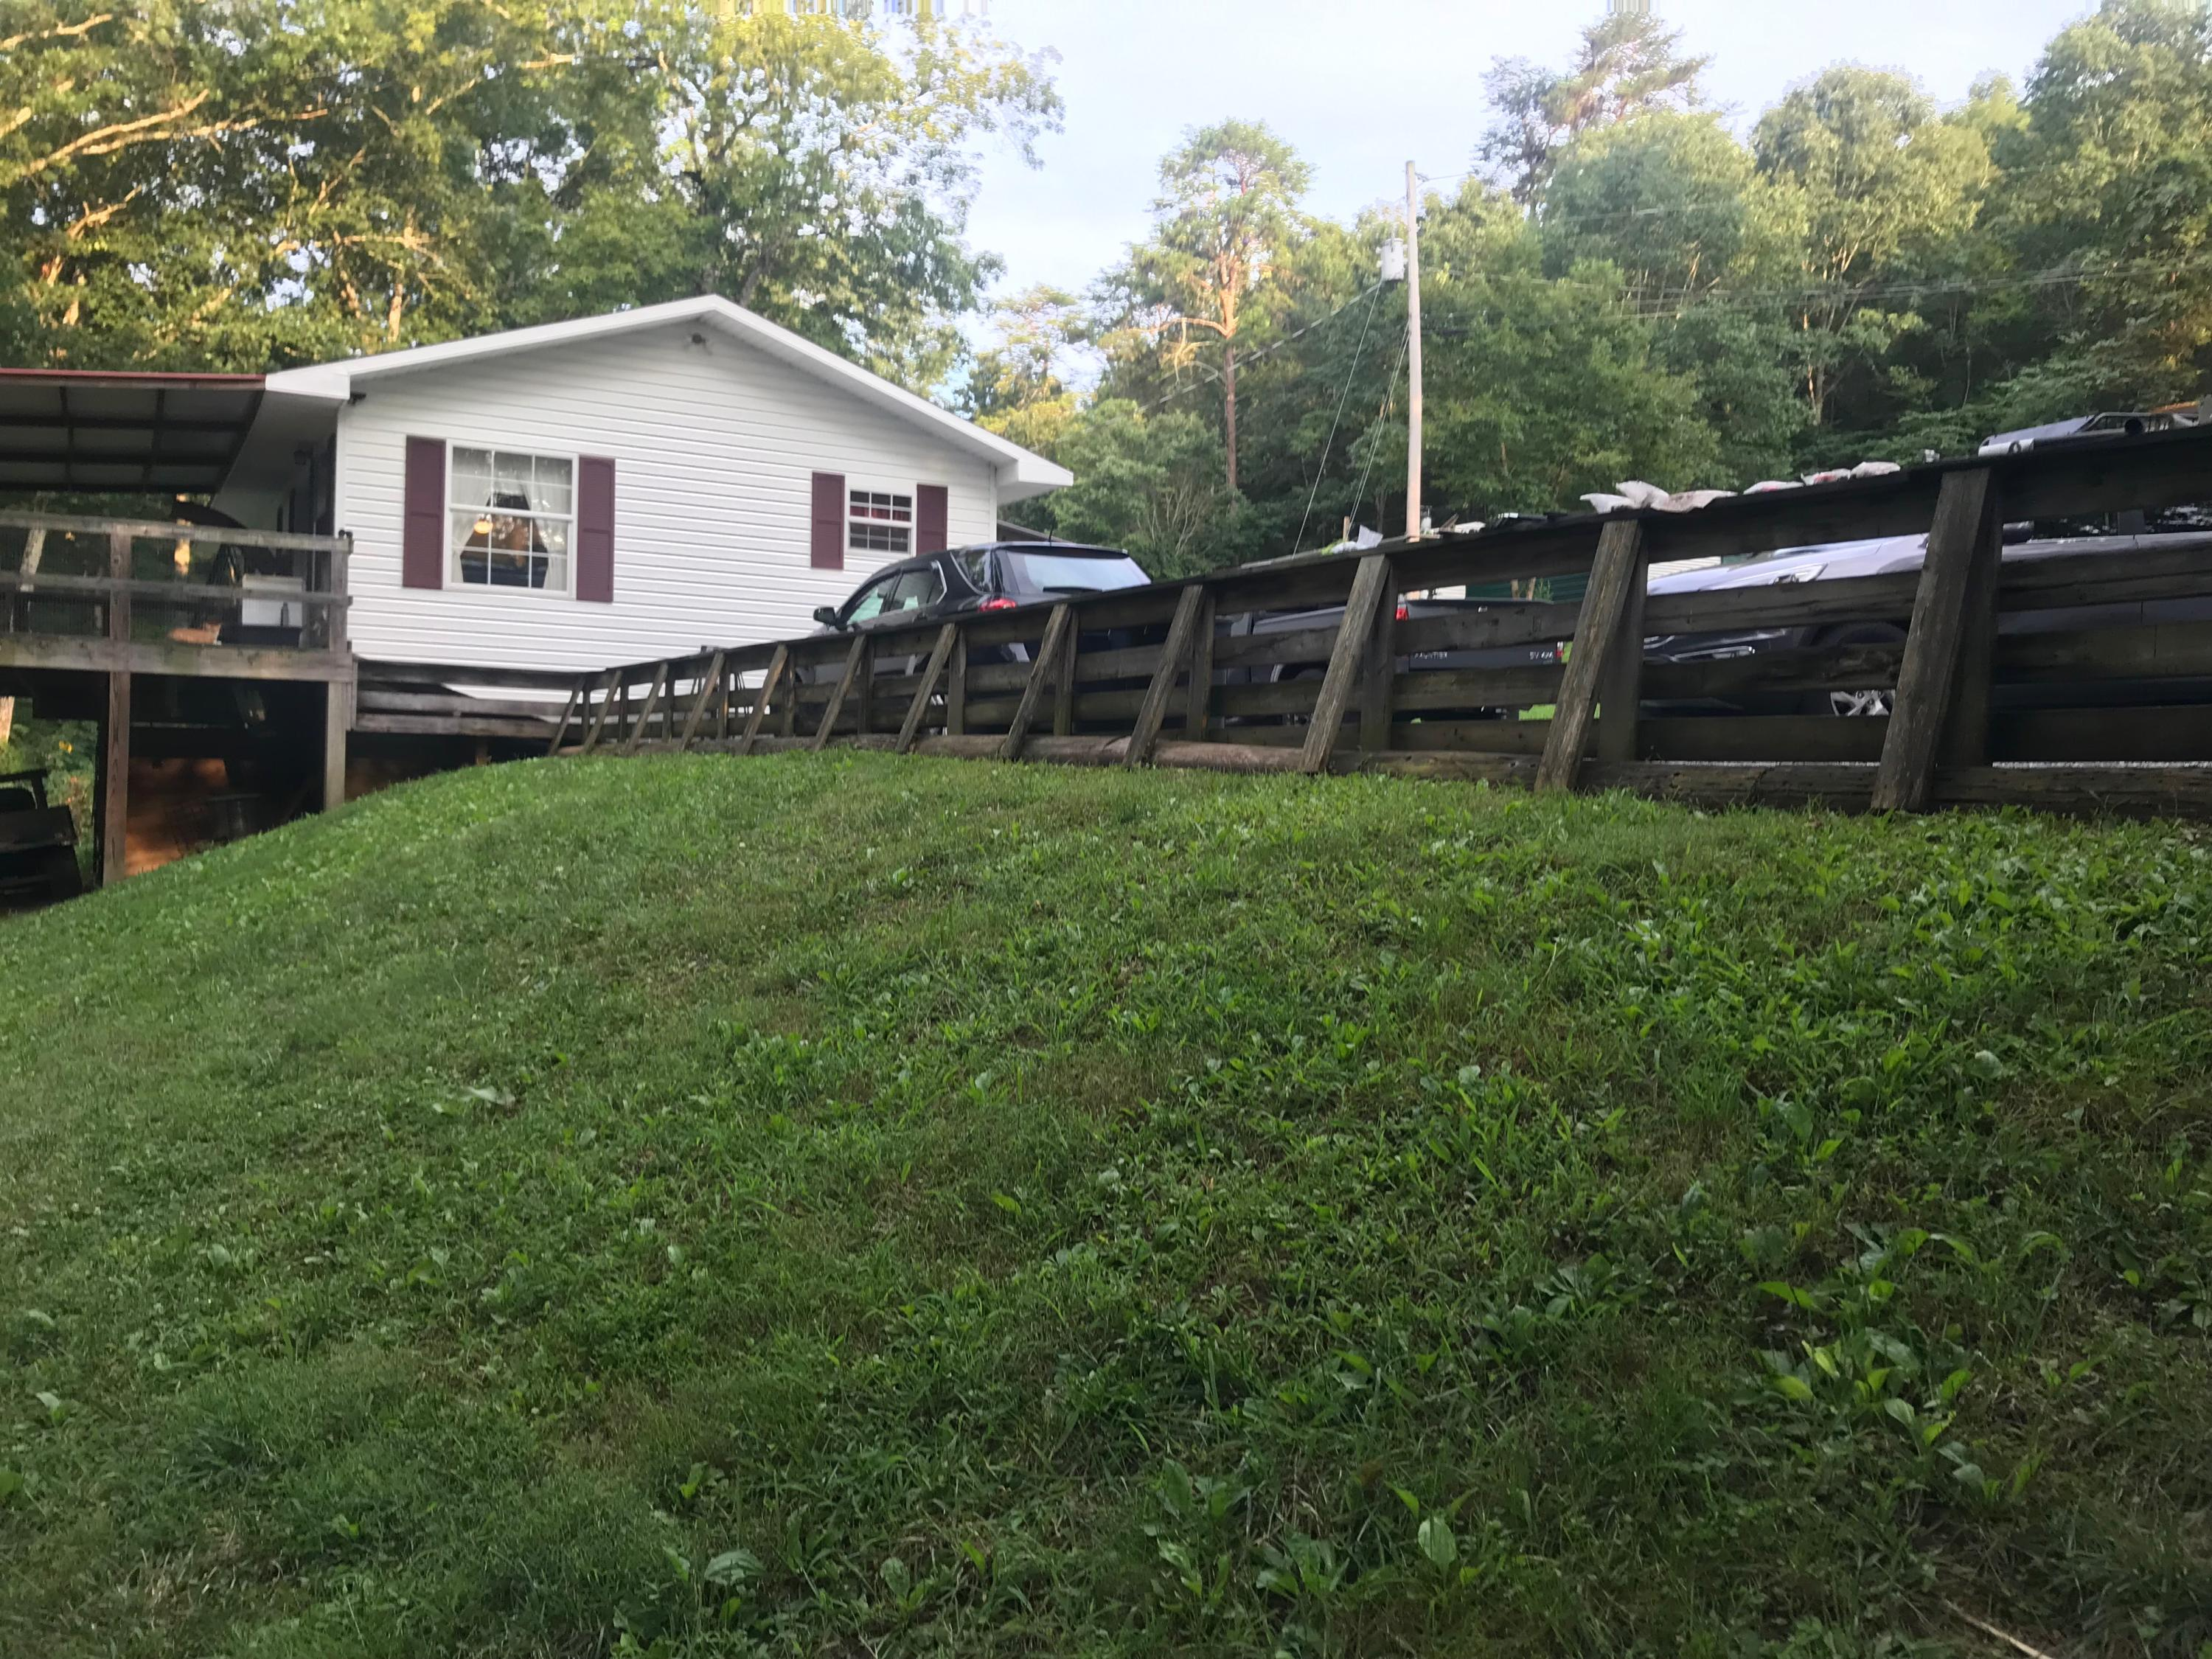 1421 Rocky Flat Road, Rutledge, Tennessee 37861, 2 Bedrooms Bedrooms, ,2 BathroomsBathrooms,Single Family,For Sale,Rocky Flat Road,1091633